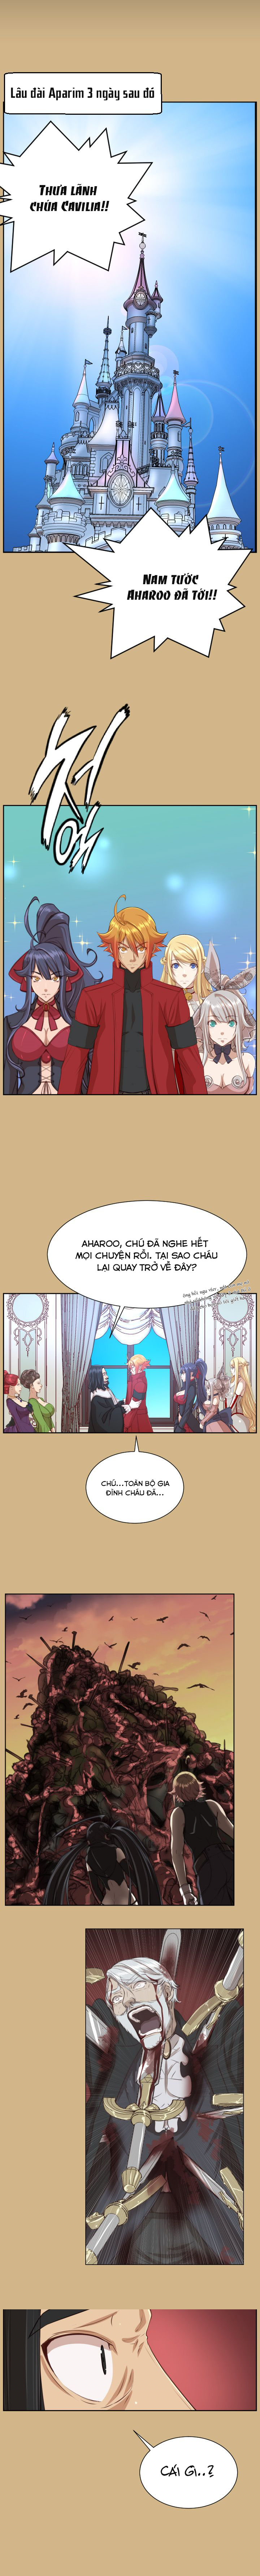 HentaiVN.net - Ảnh 14 - Yahalue - Aharoo - Ahab road; 亚哈路 - Chap 43